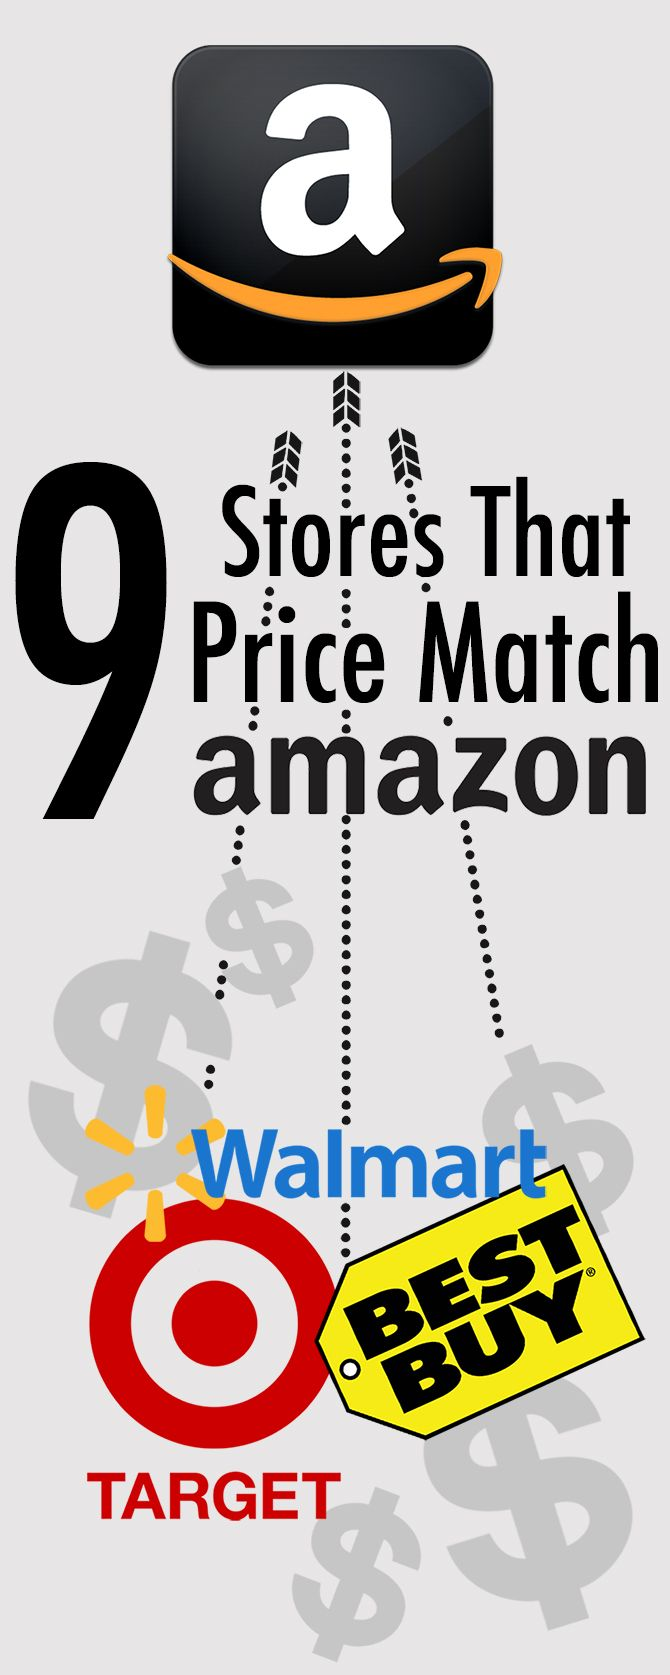 9 Retailers That Will Price Match Amazon